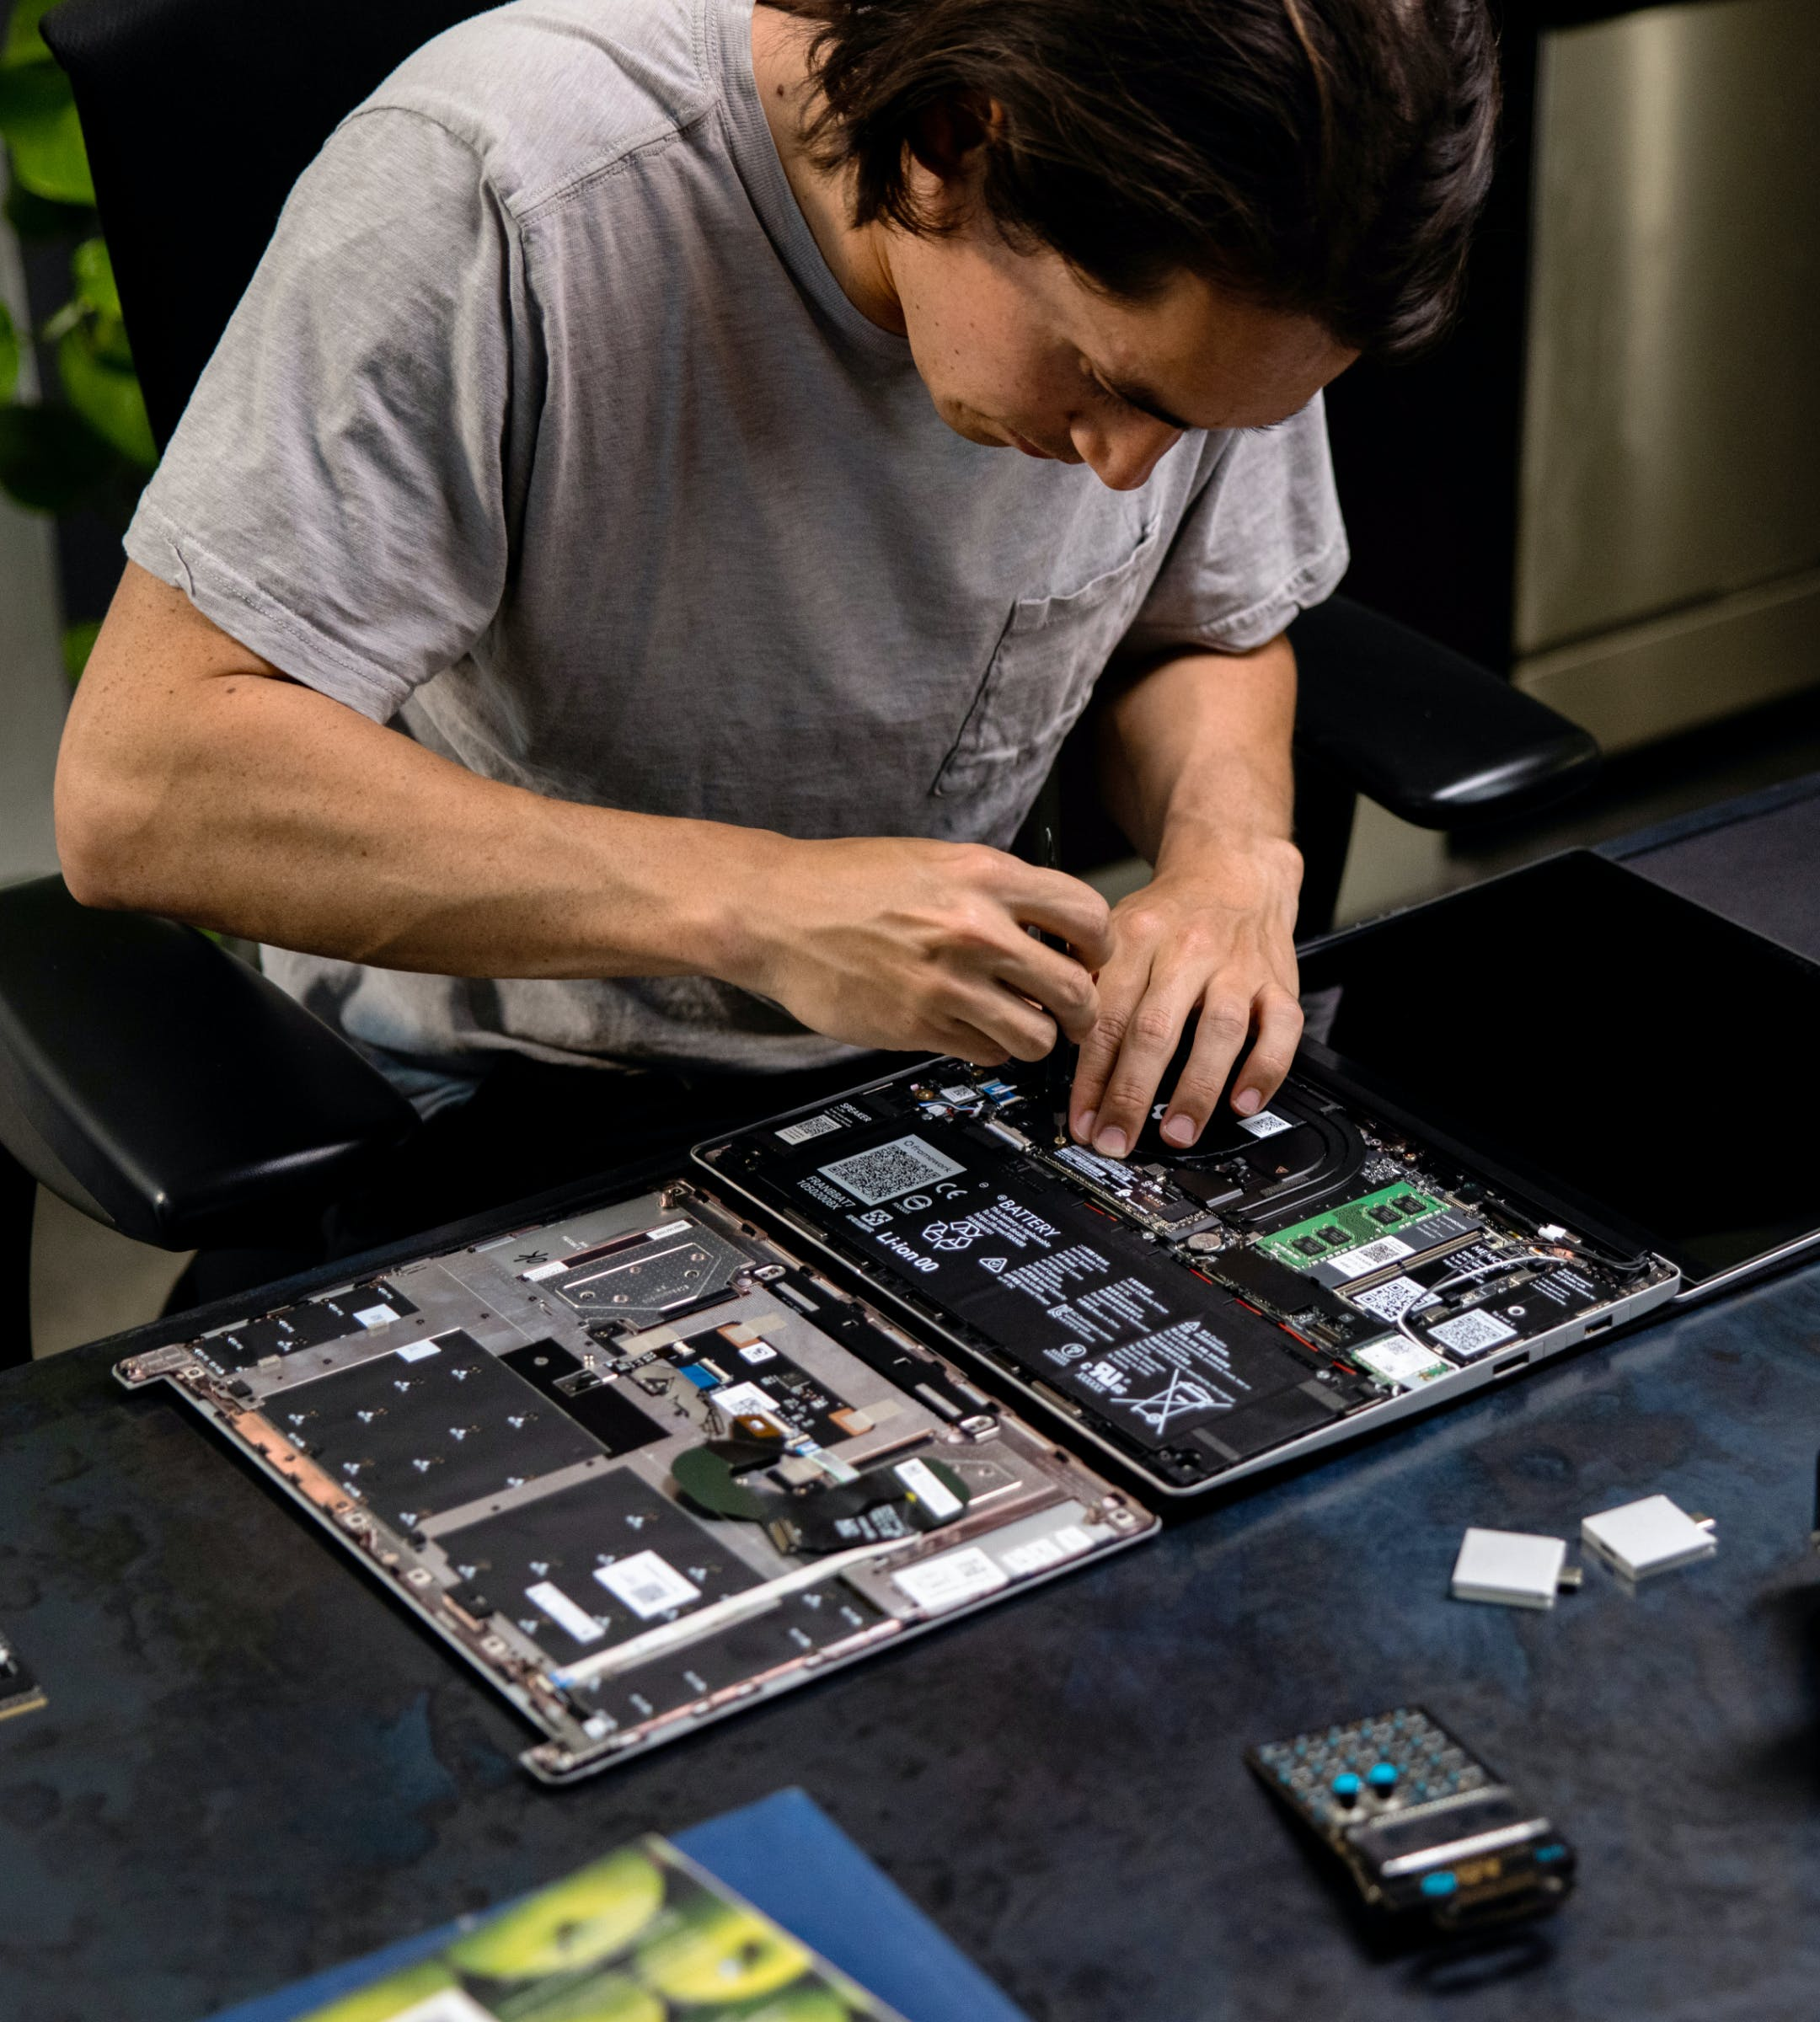 a person assembling a laptop